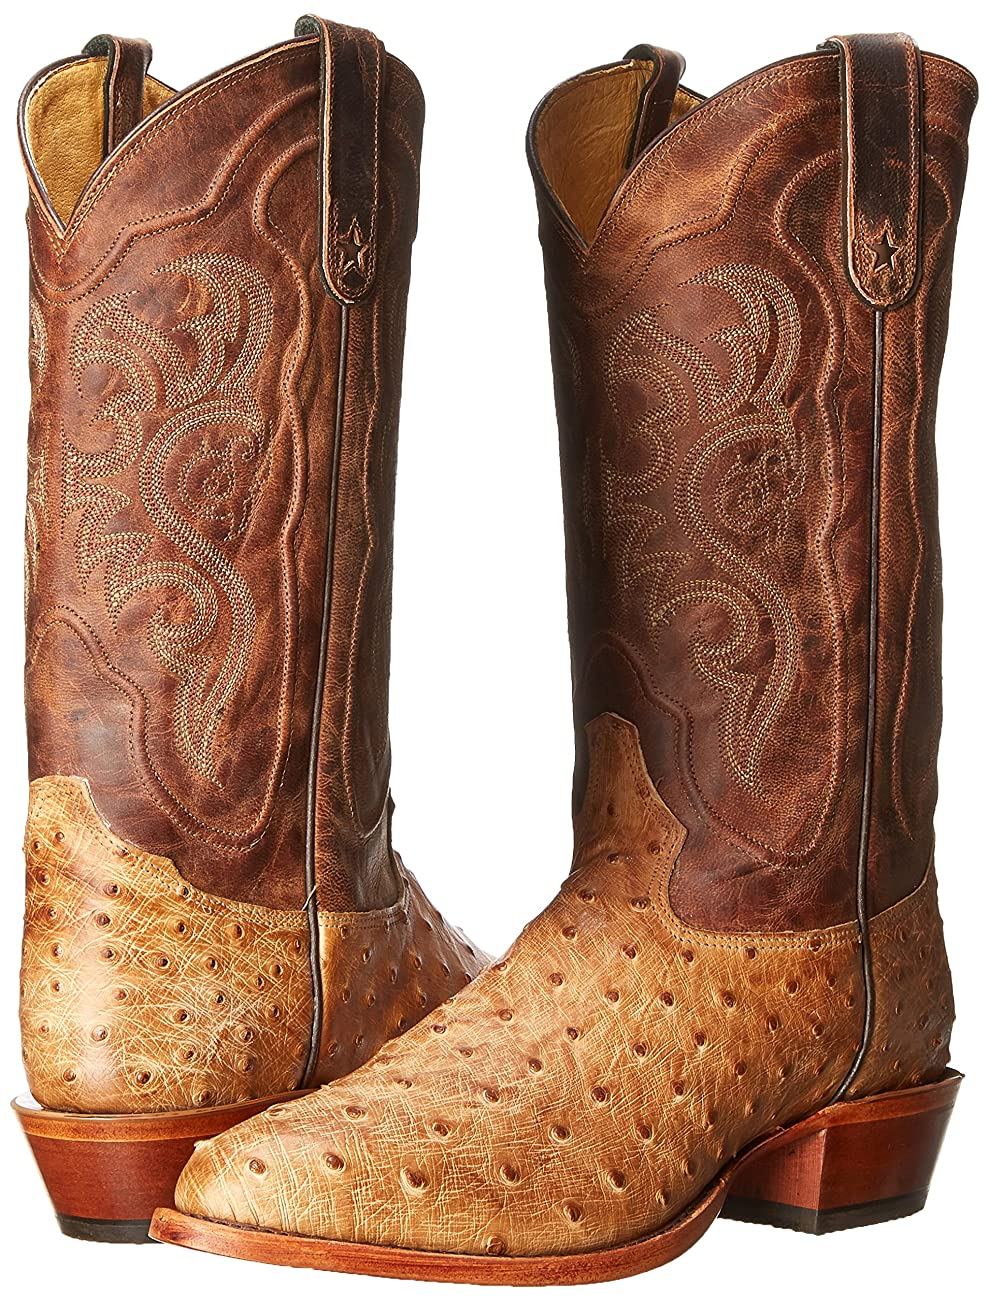 Tony Lama Men's Antique Tan Vintage FQ Ostrich Western Boot 6